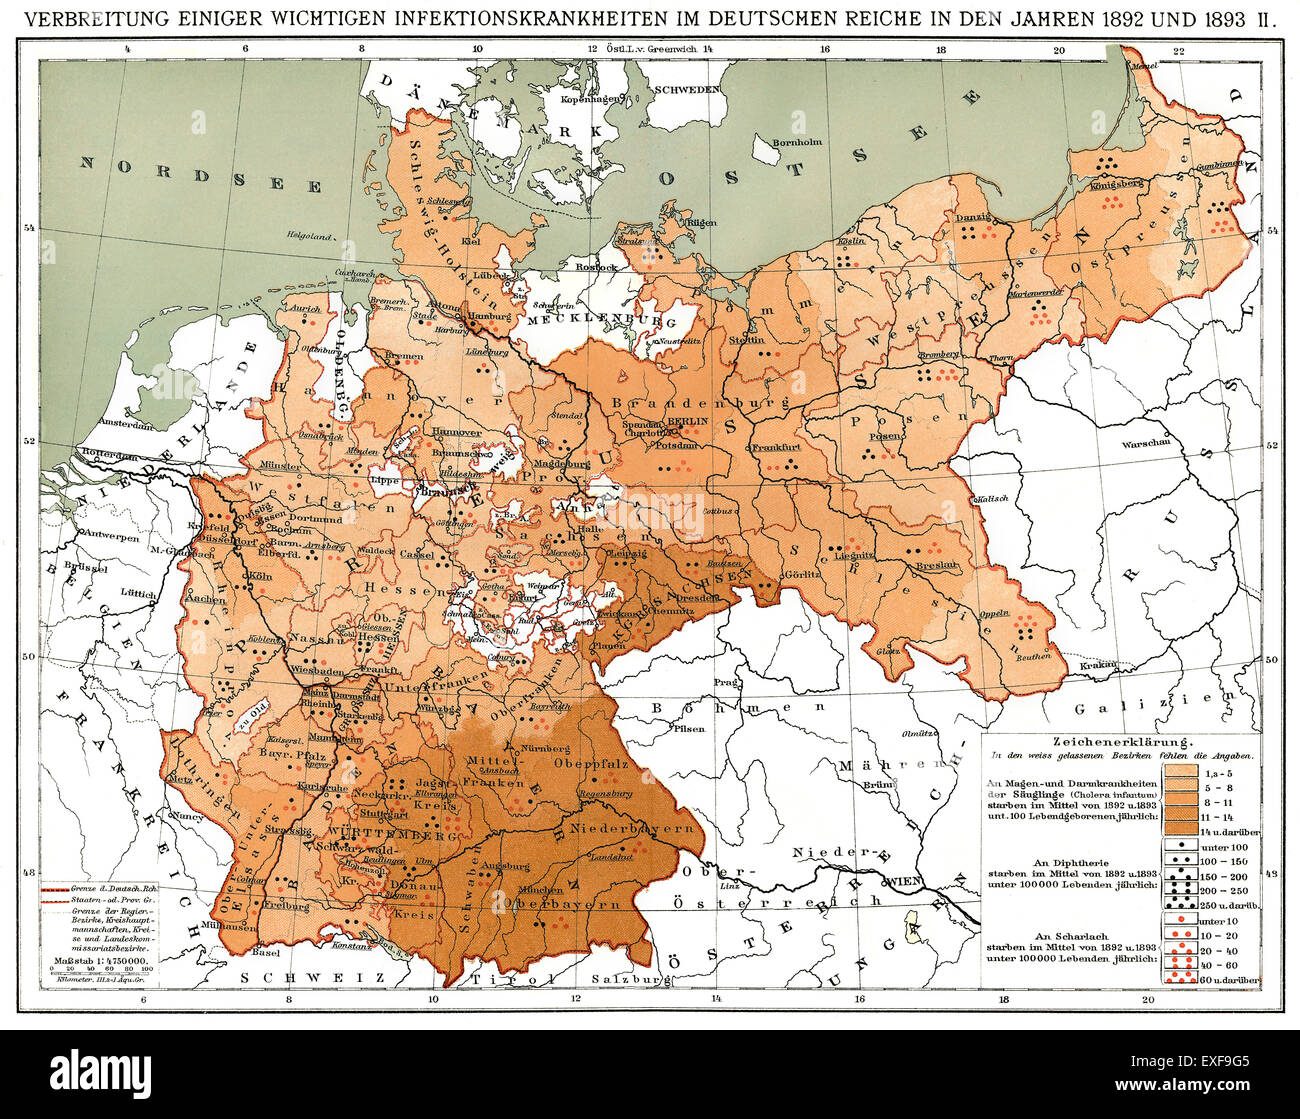 Historical map, spread of infectious diseases in the German Empire in 1892 and 1893 - Stock Image